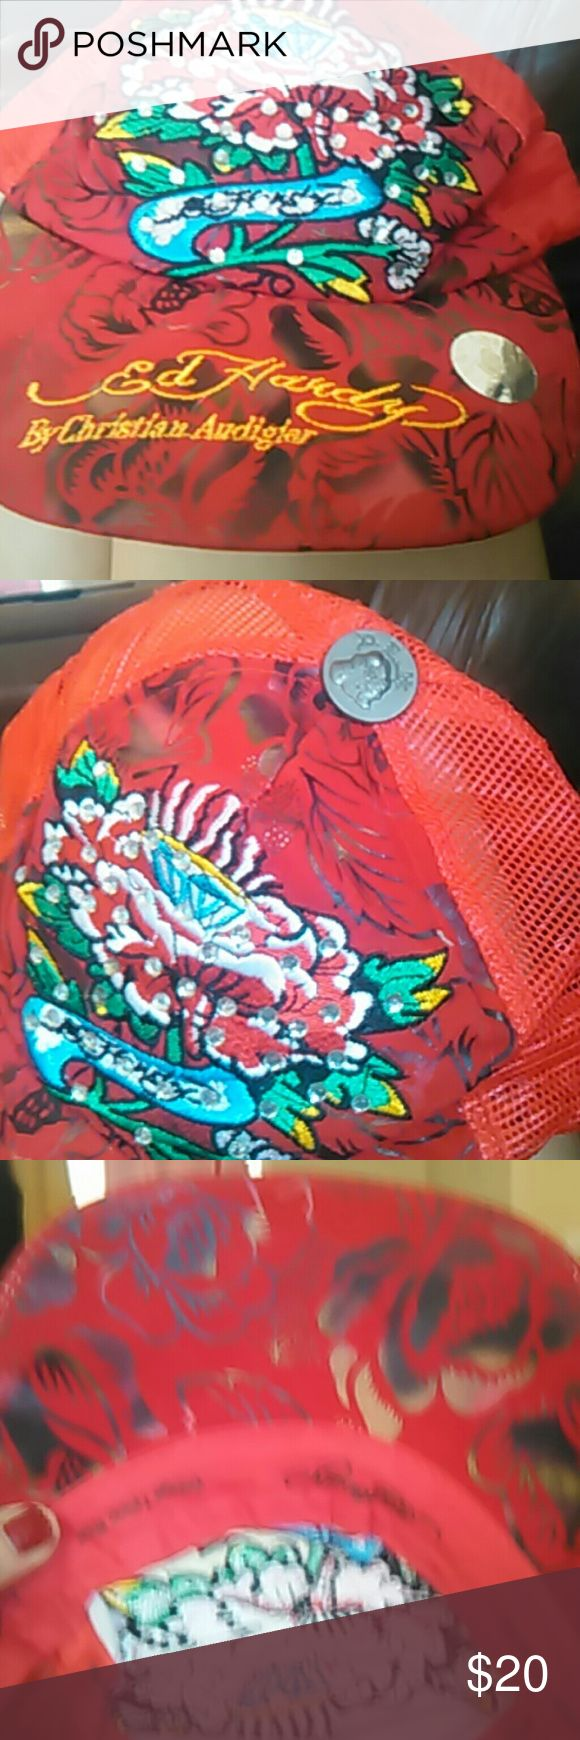 Don ed hardy hat Don  Ed Hardy red hat with design by Christian Audigiar adjustable hat ed hardy Christian Audigiar  Accessories Hats